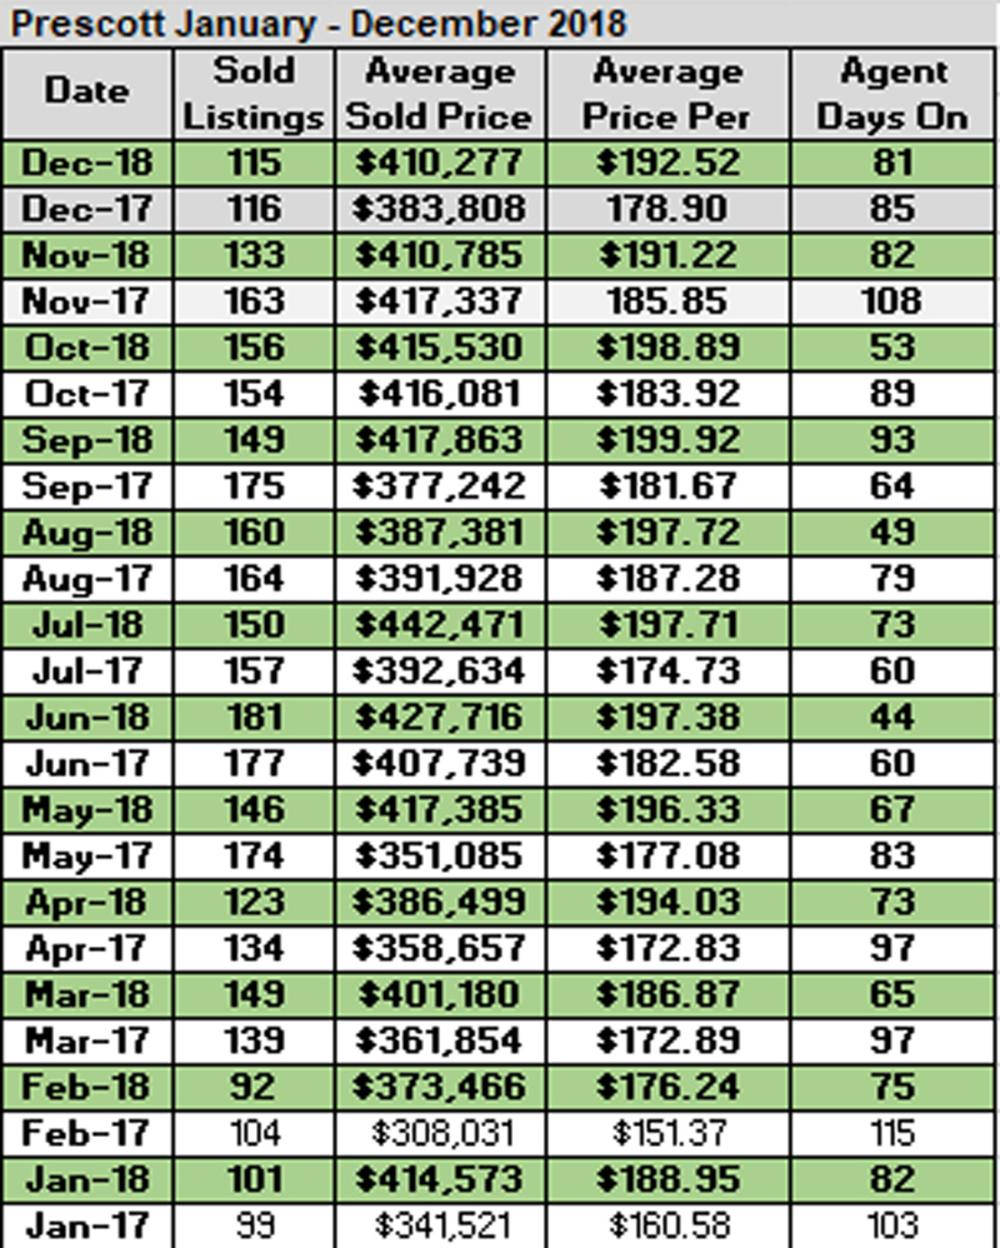 Prescott Home Sales Trends by Month for 2018 and 2017